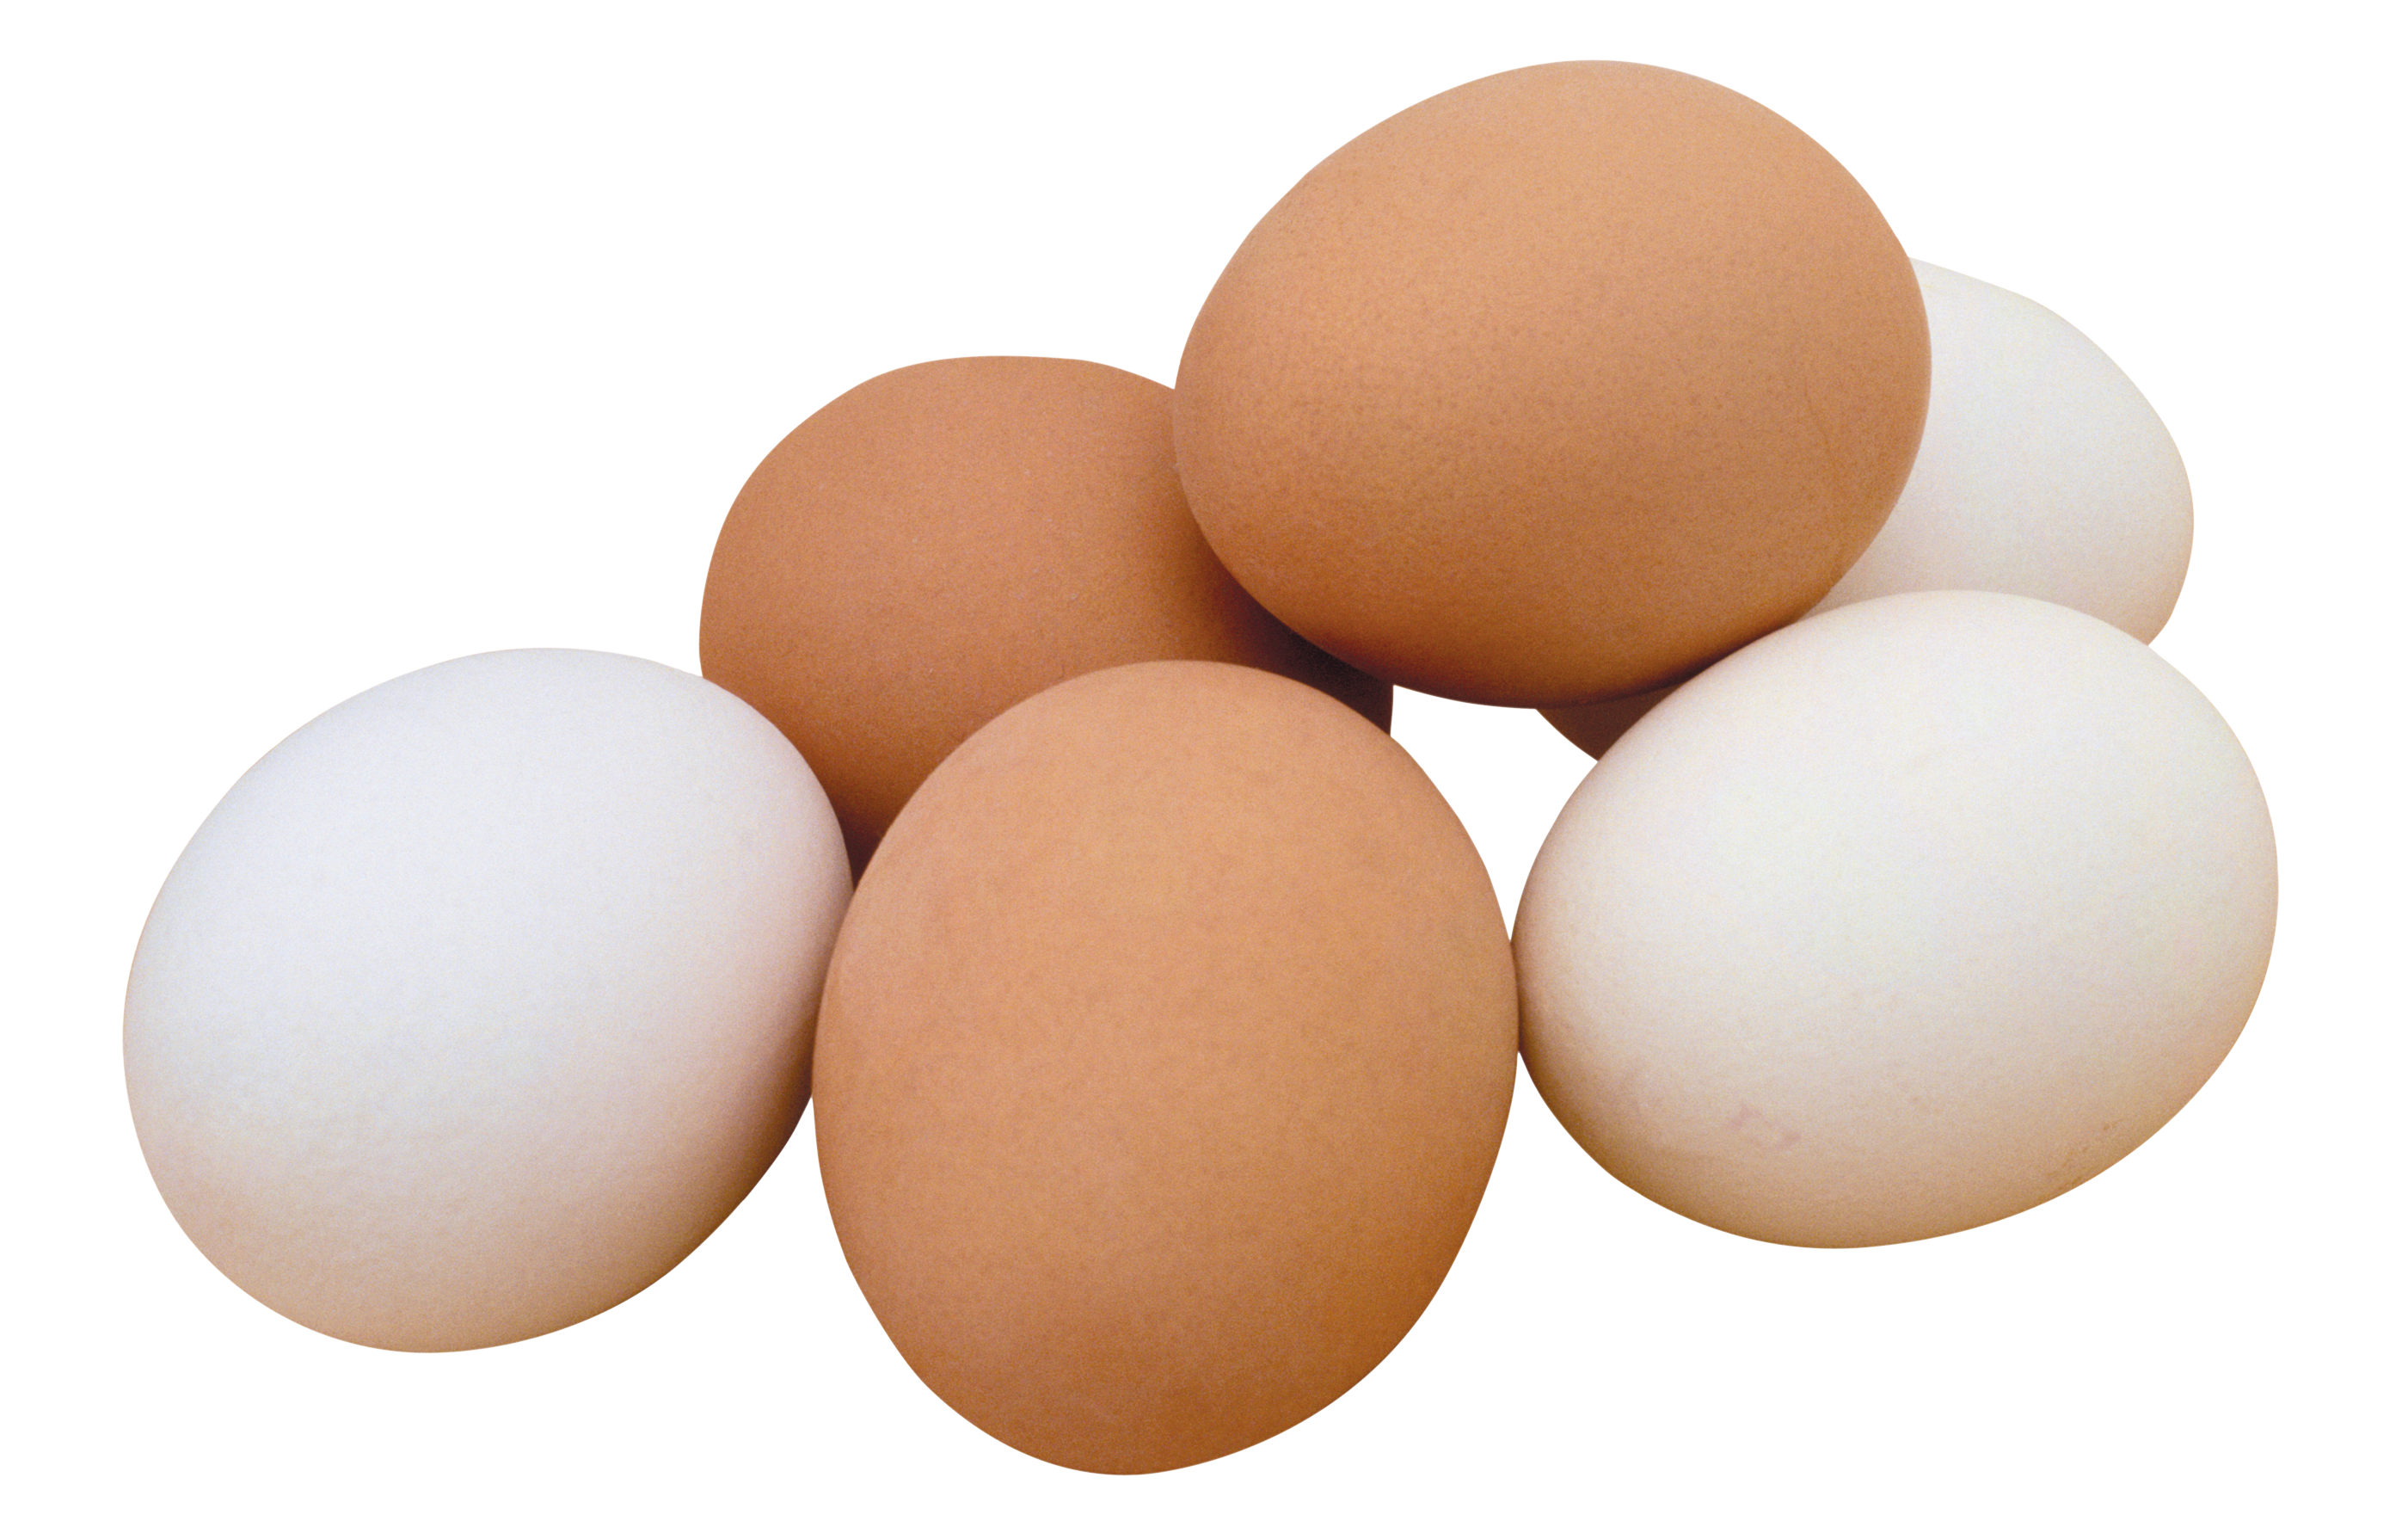 Chicken With Egg Png - Eggs PNG image, free download PNG pictures of eggs